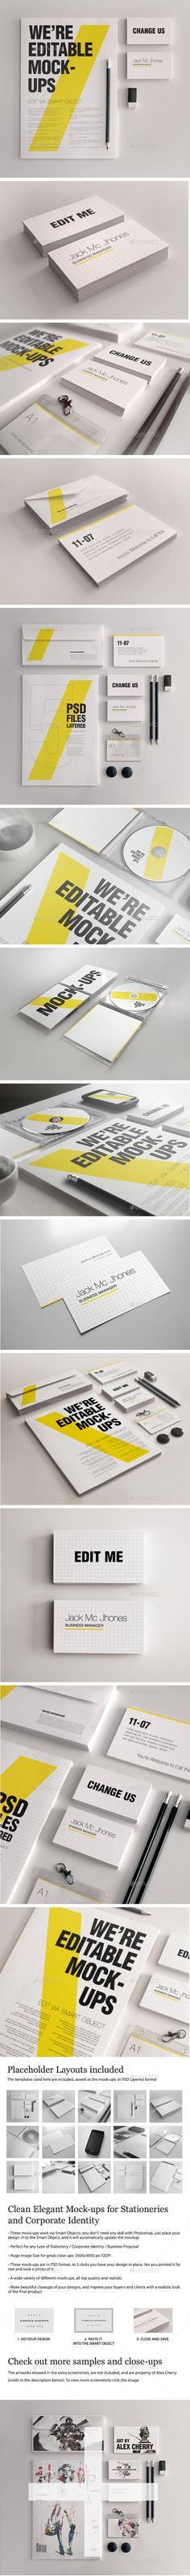 15 Elegant Realistic Stationery Mockups Bundle  Business Corporate ID — Photoshop PSD #presentation #business • Download ➝ https://graphicriver.net/item/15-elegant-realistic-stationery-mockups-bundle-business-corporate-id/18908225?ref=pxcr